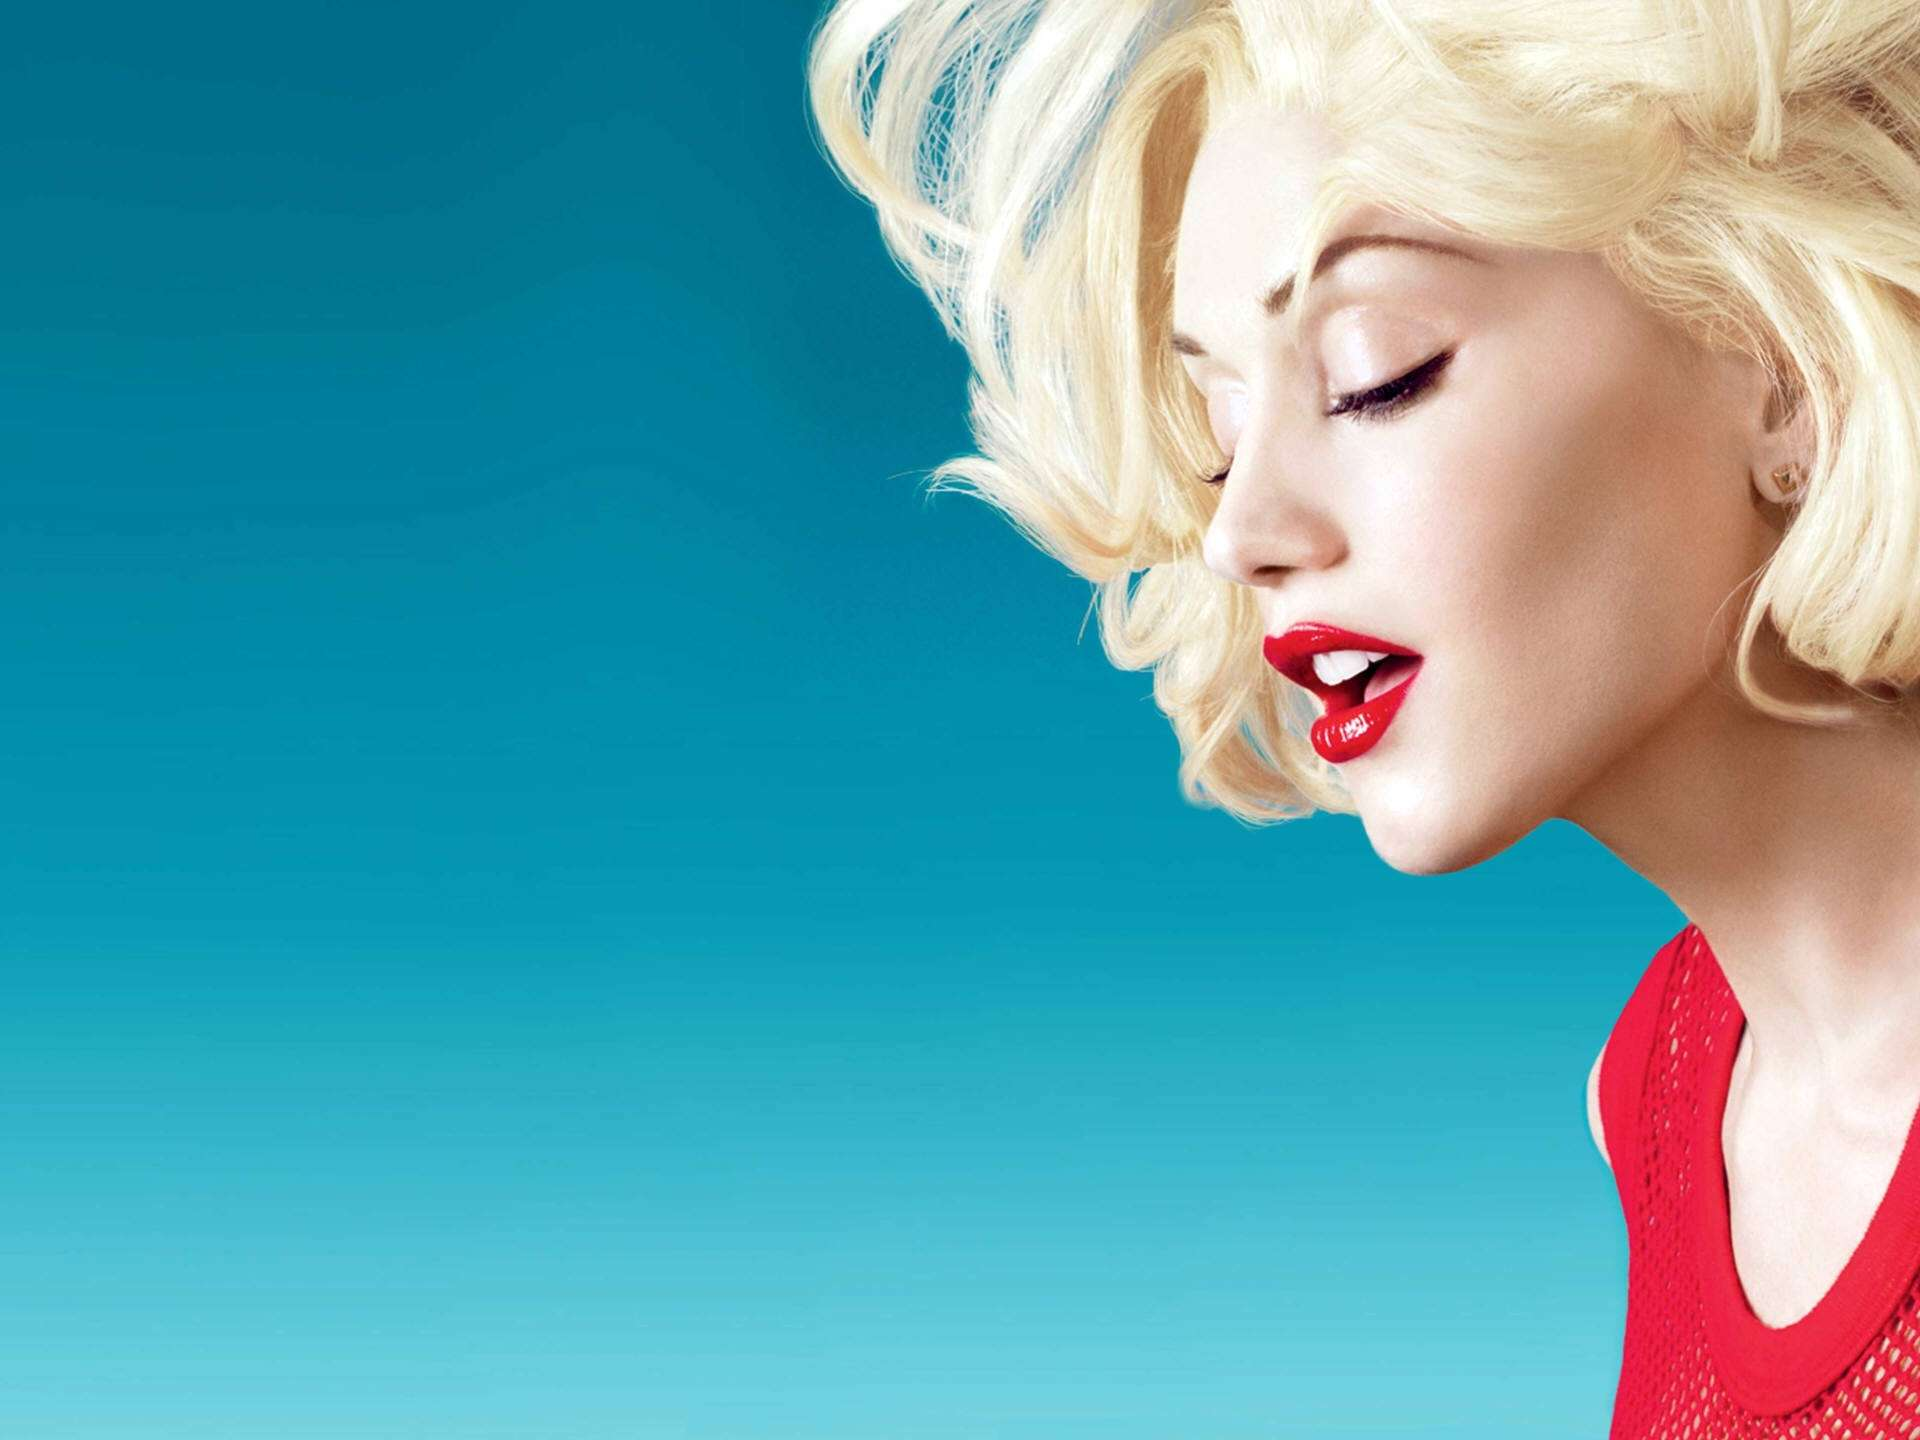 Desktop 3d Super Hd Wallpapers Gwen Stefani Wallpaper Hd Wallpapers